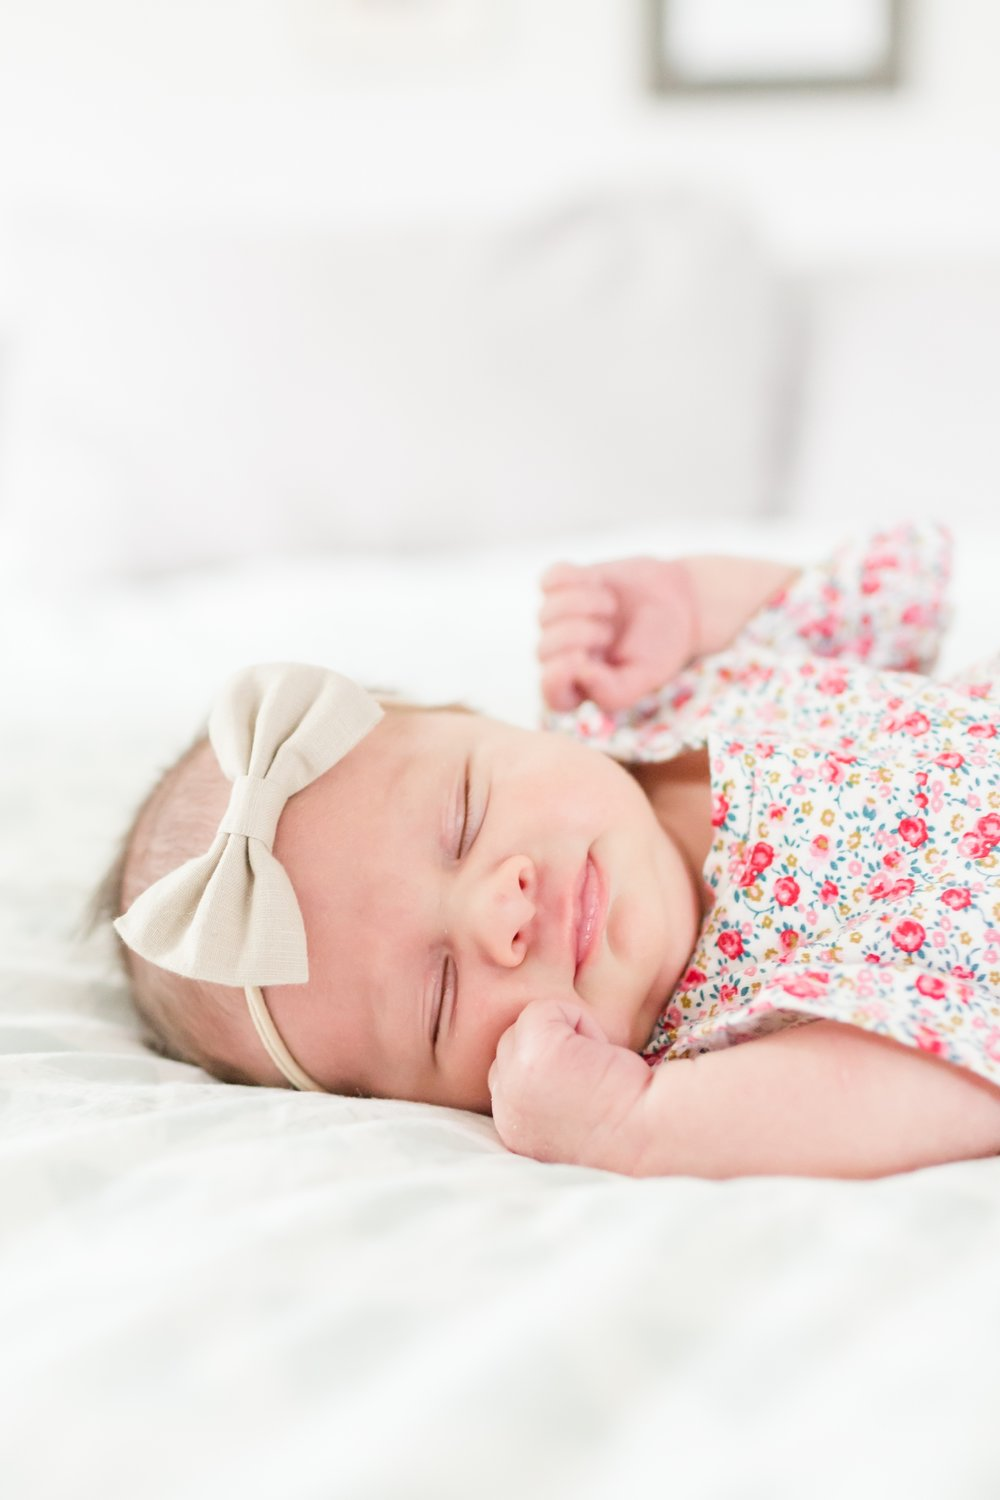 Martin Newborn-162_maryland-virginia-alexandria-newborn-photographer-anna-grace-photography-photo.jpg